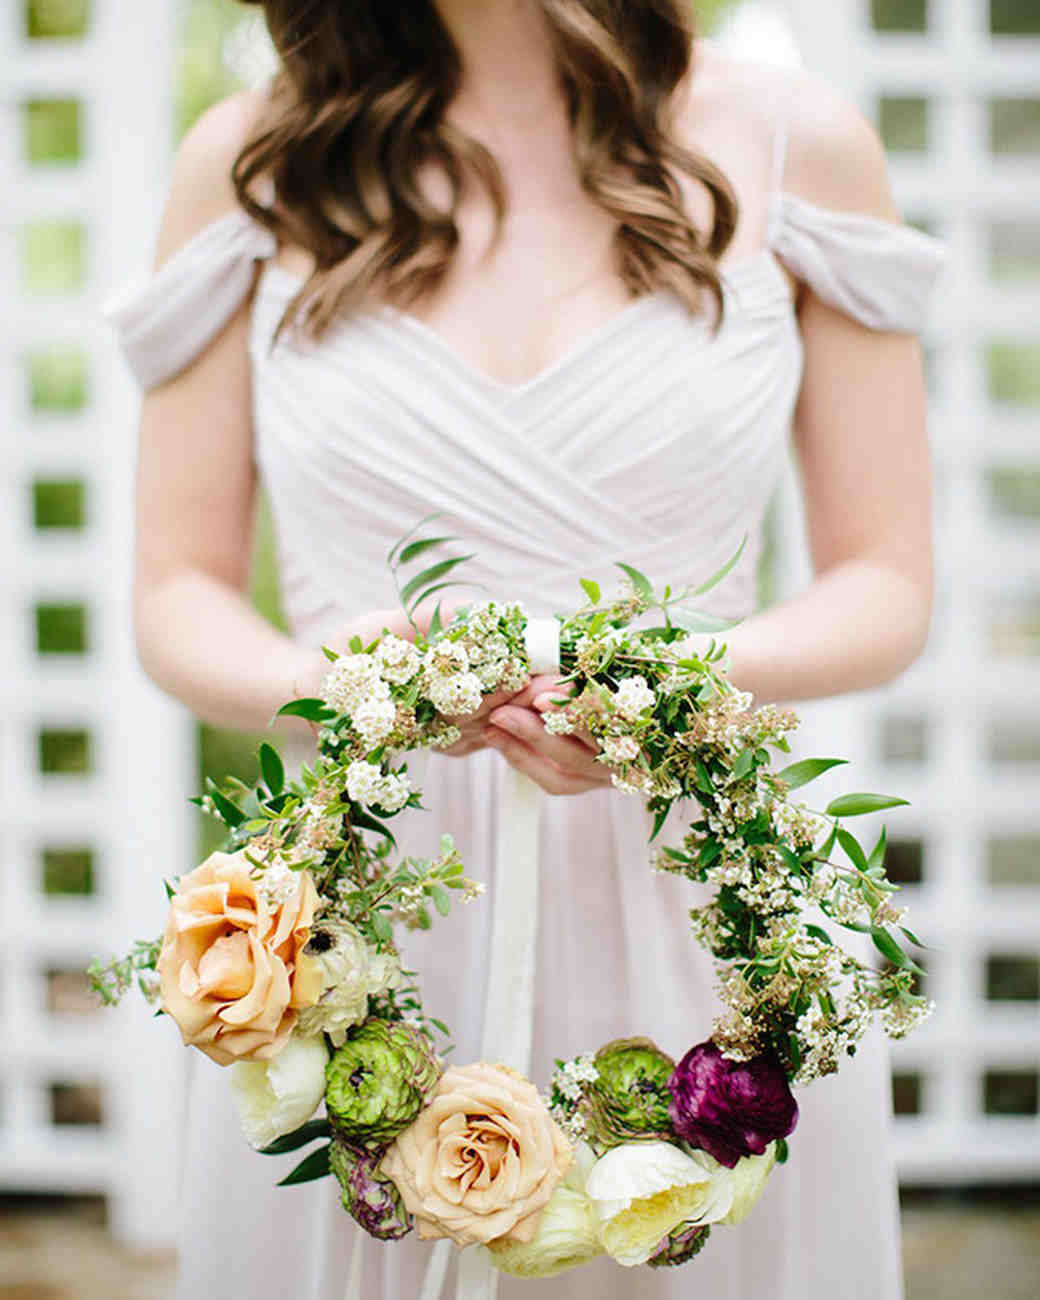 20 Hoop Bouquets Every Member Of Your Bridal Party Will Love